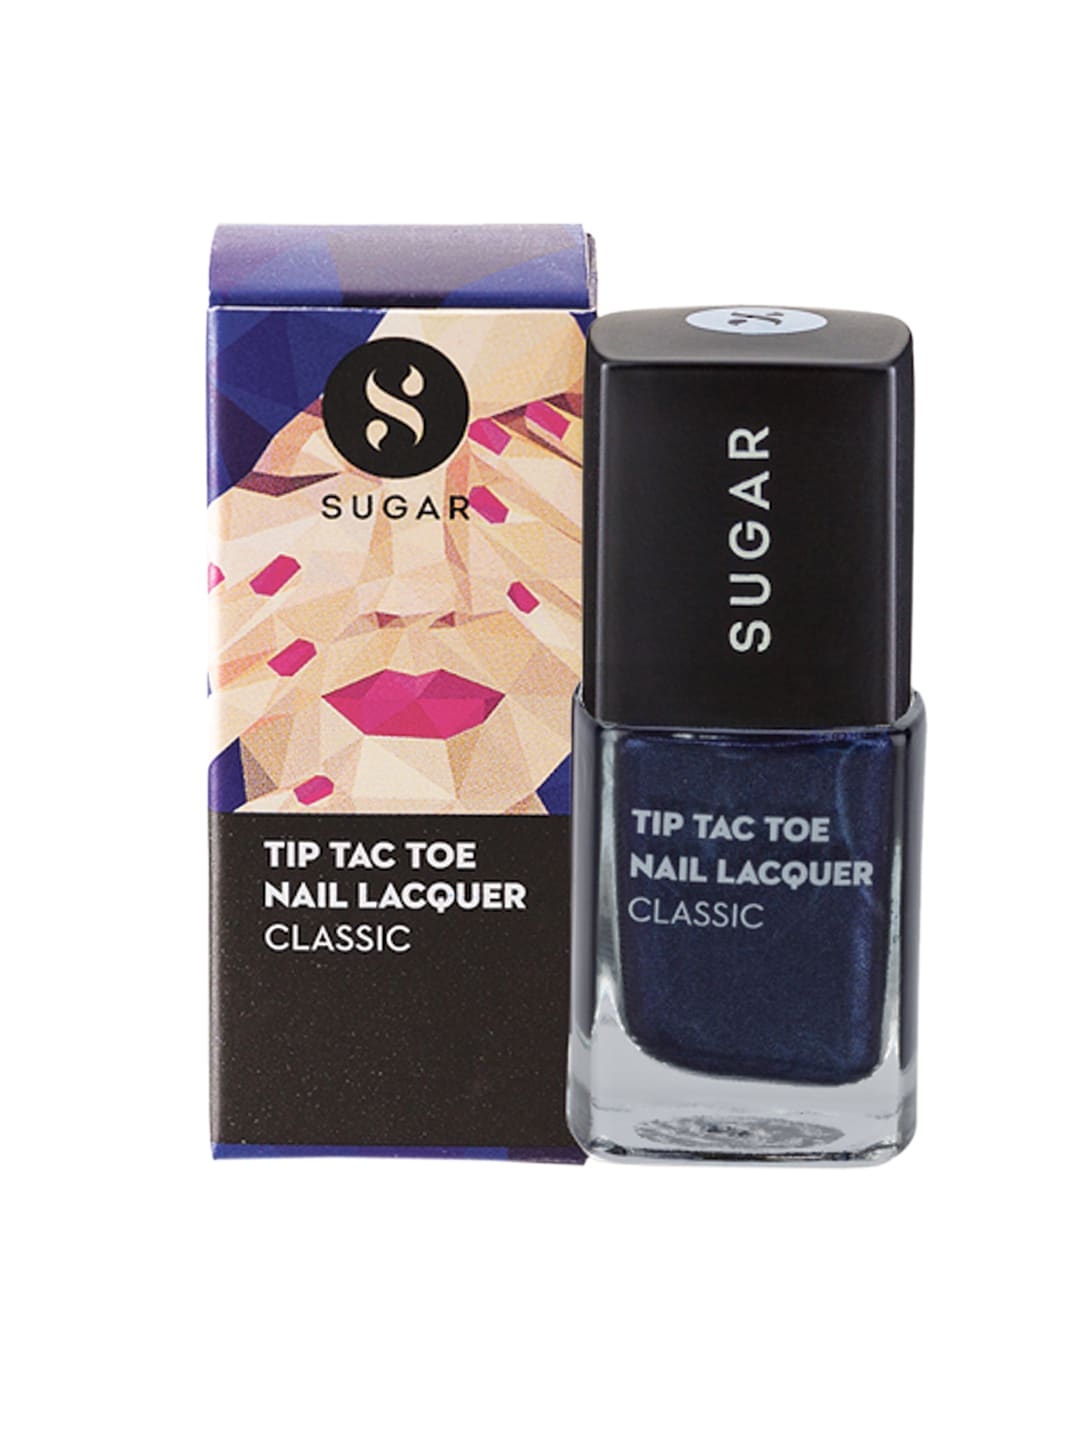 SUGAR Tip Tac Toe Classic Nail Lacquer - 005 Blue-Blooded image